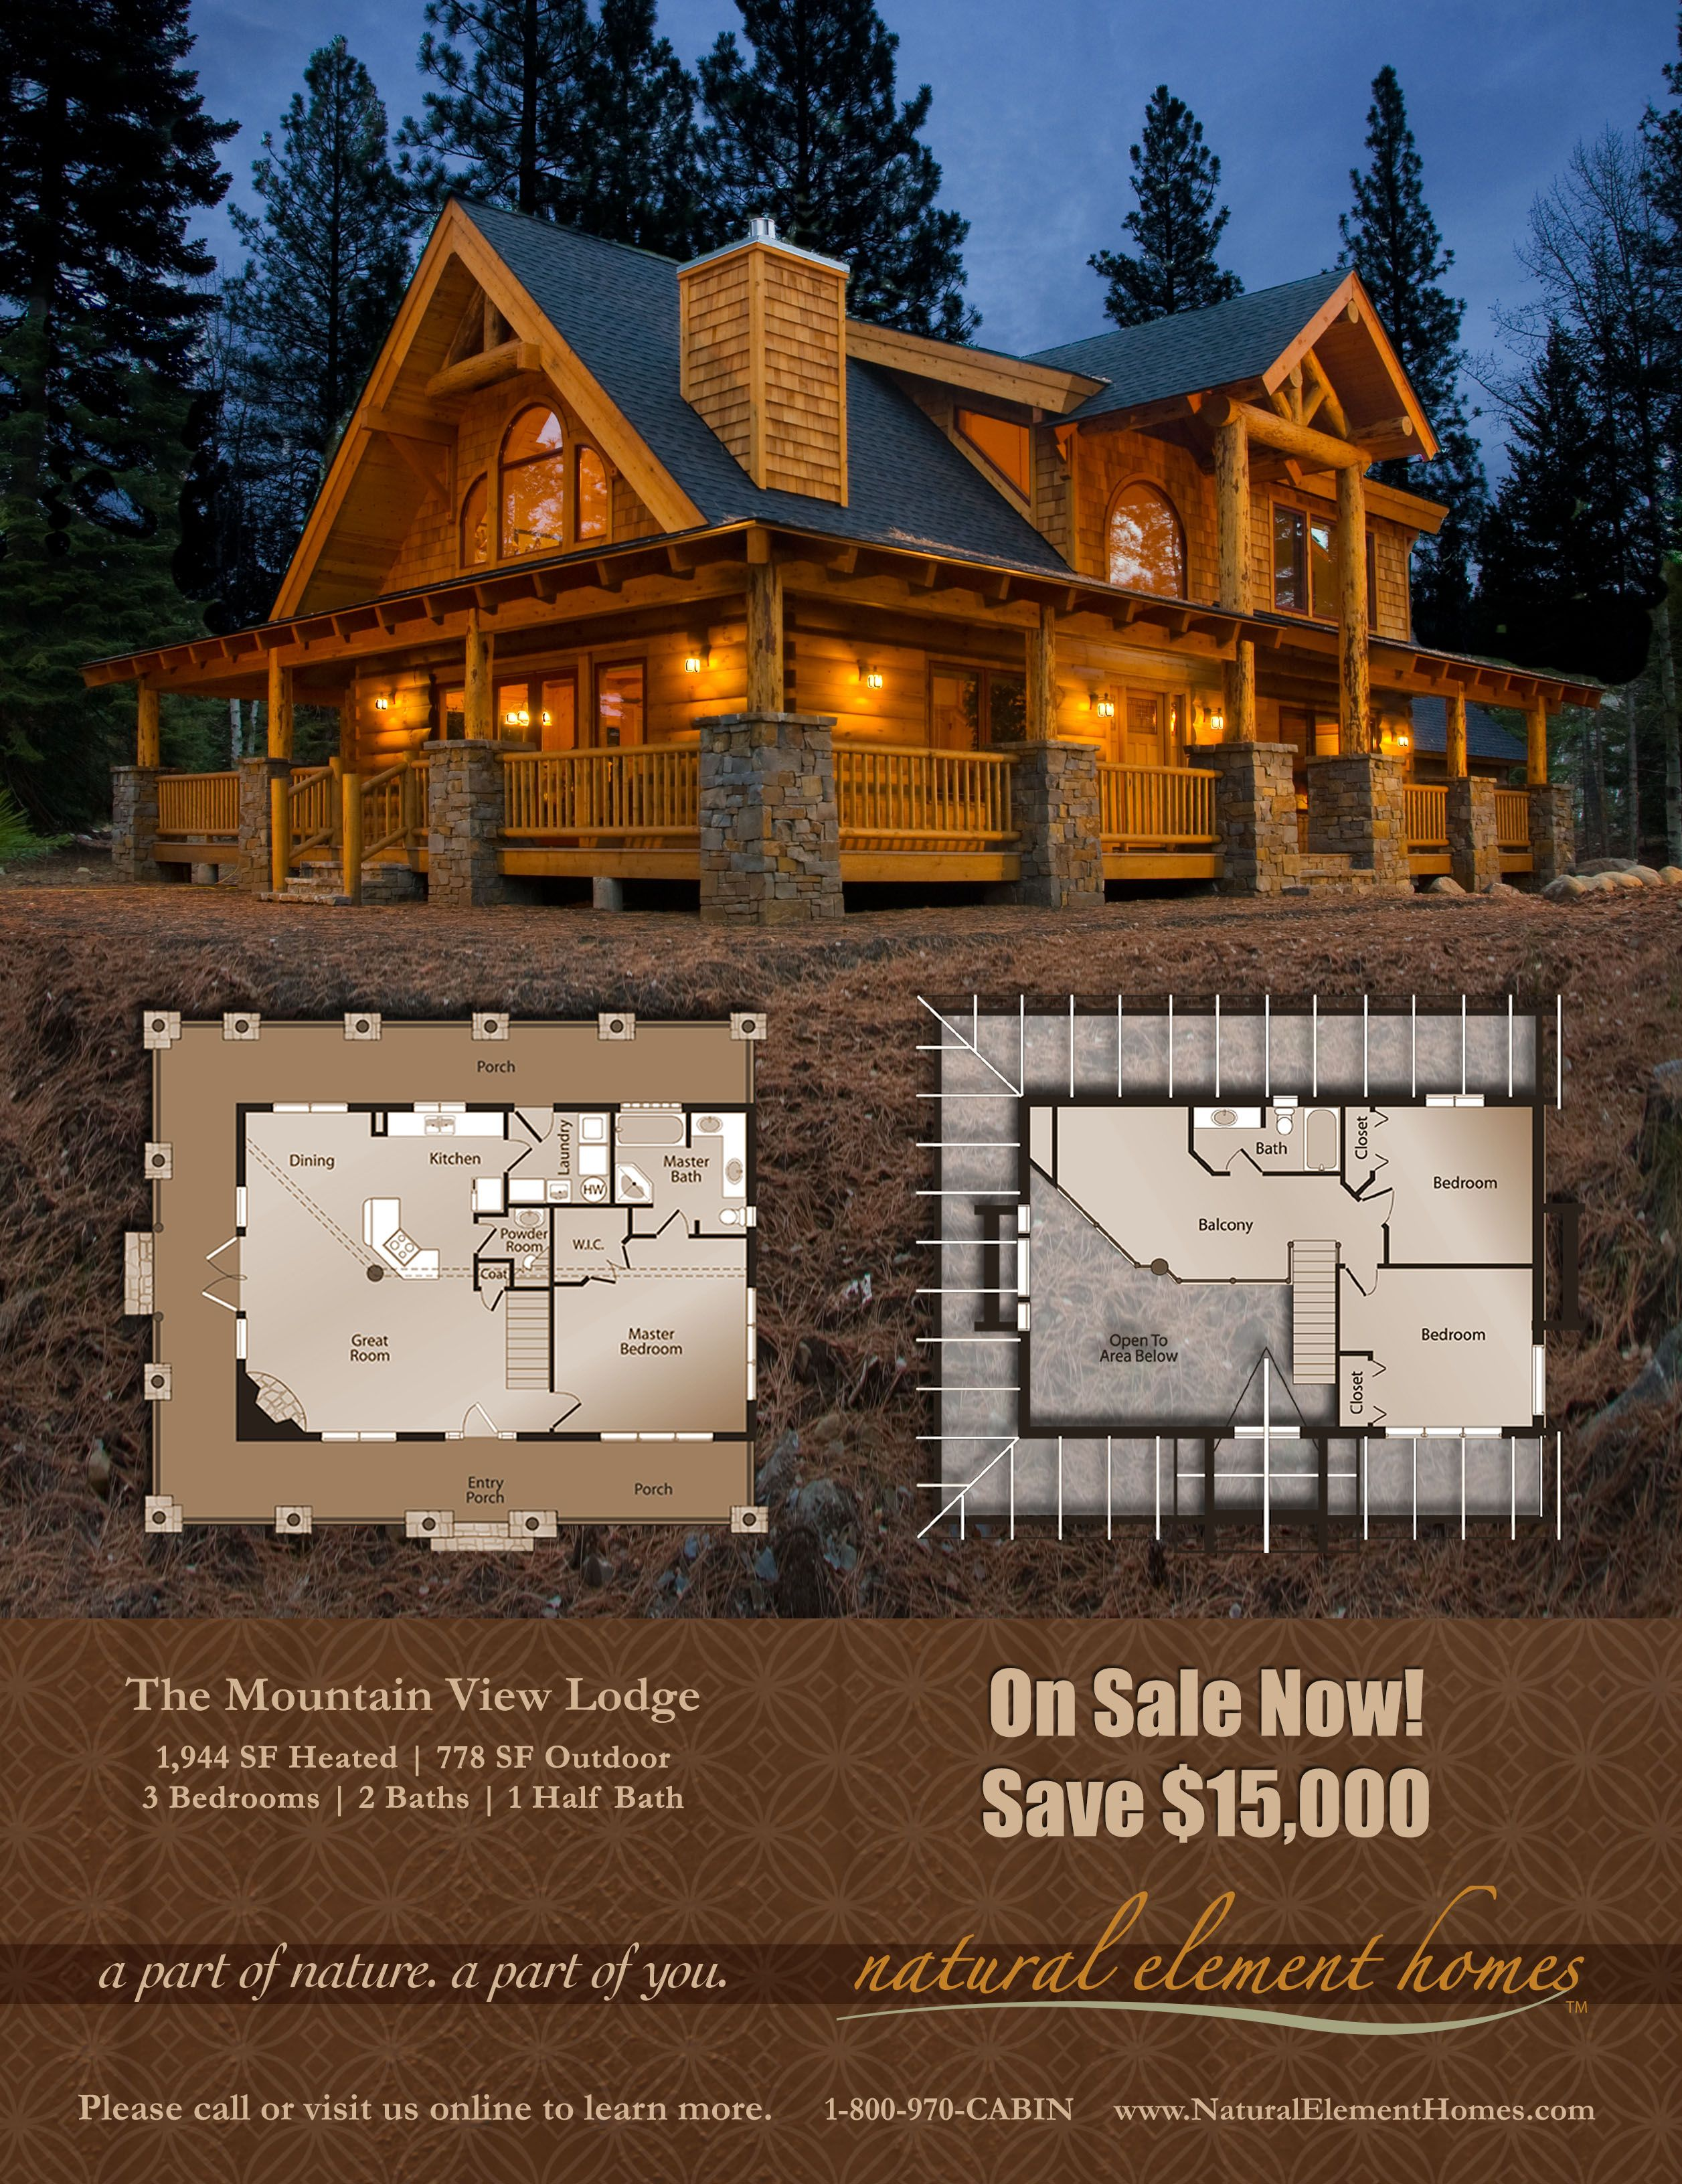 Exceptionnel Save $15,000 On The Mountain View Lodge | Ad In Log Cabin Homes Magazine. Id